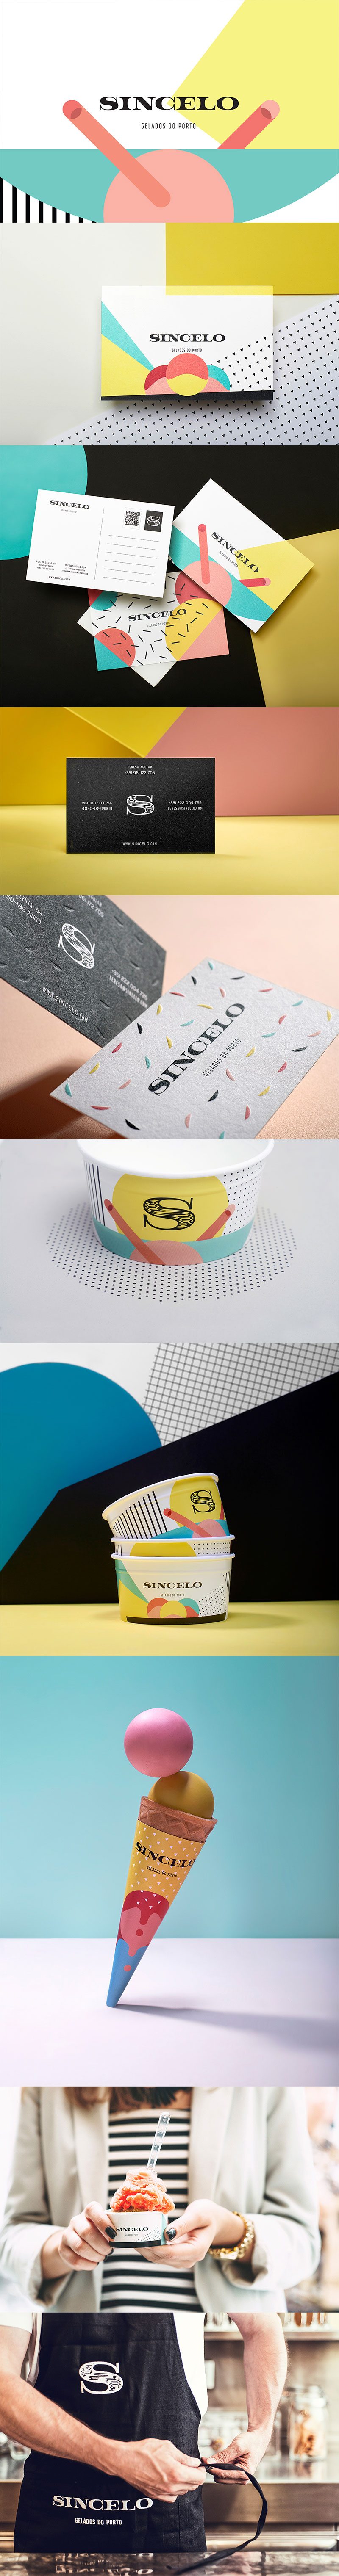 Ice Cream Packaging - Sincelo by This is Pacifica